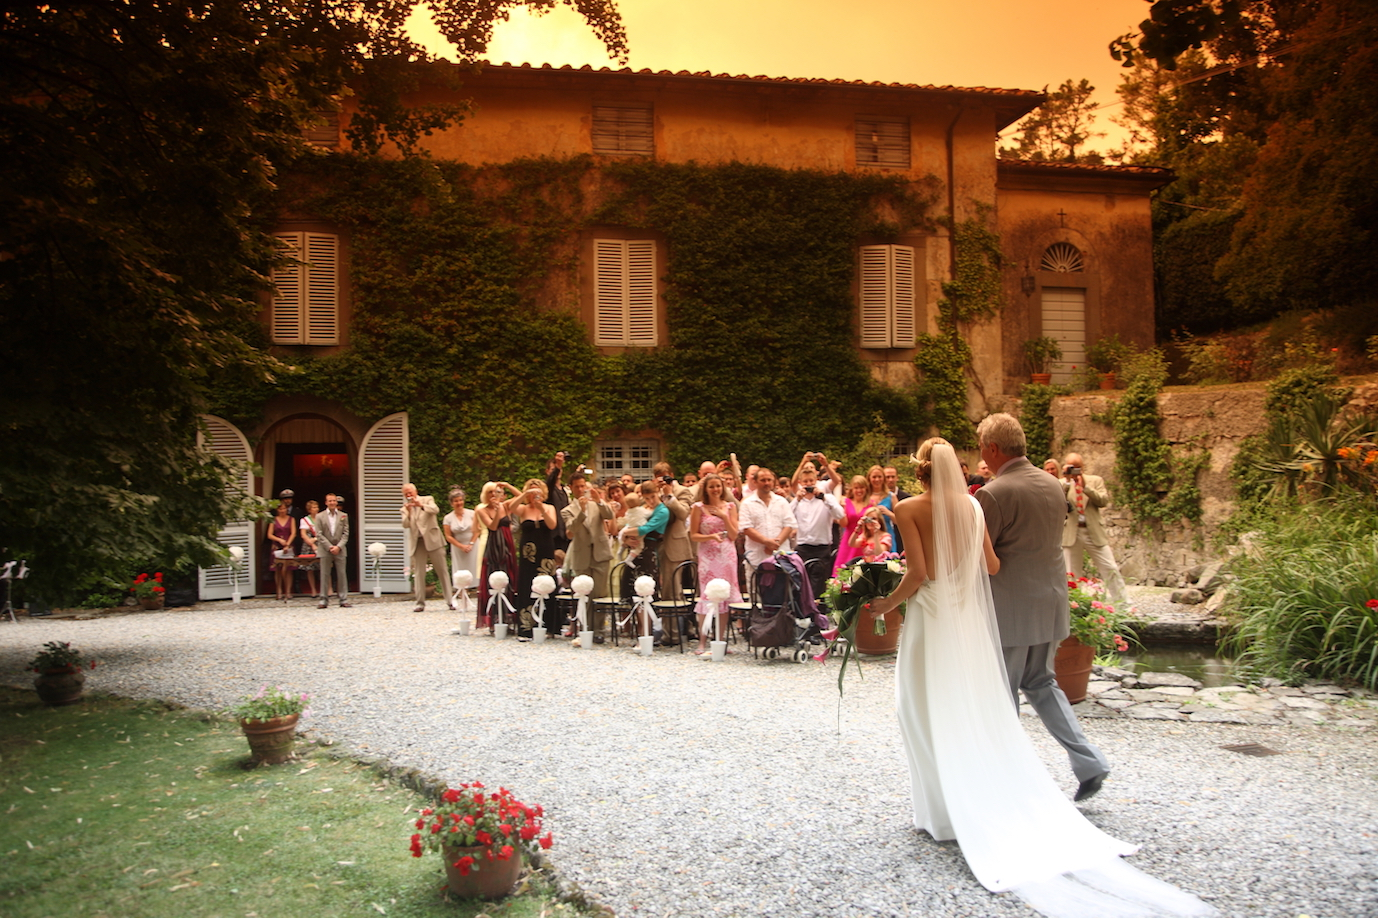 Wedding ceremony location in Lucca